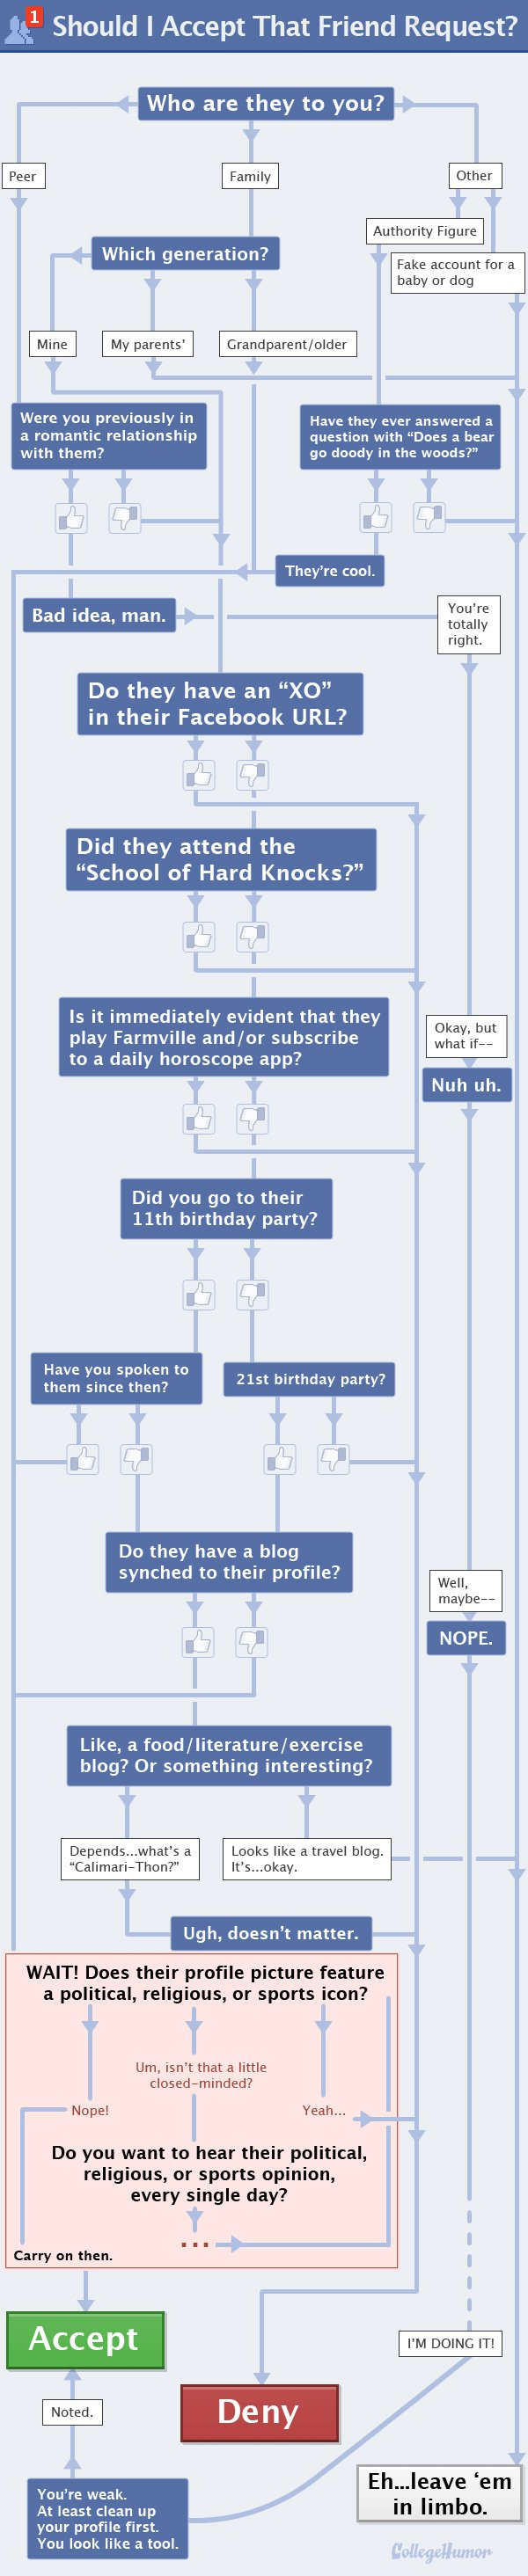 Should You Accept That Facebook Friend Request? [Flowchart]